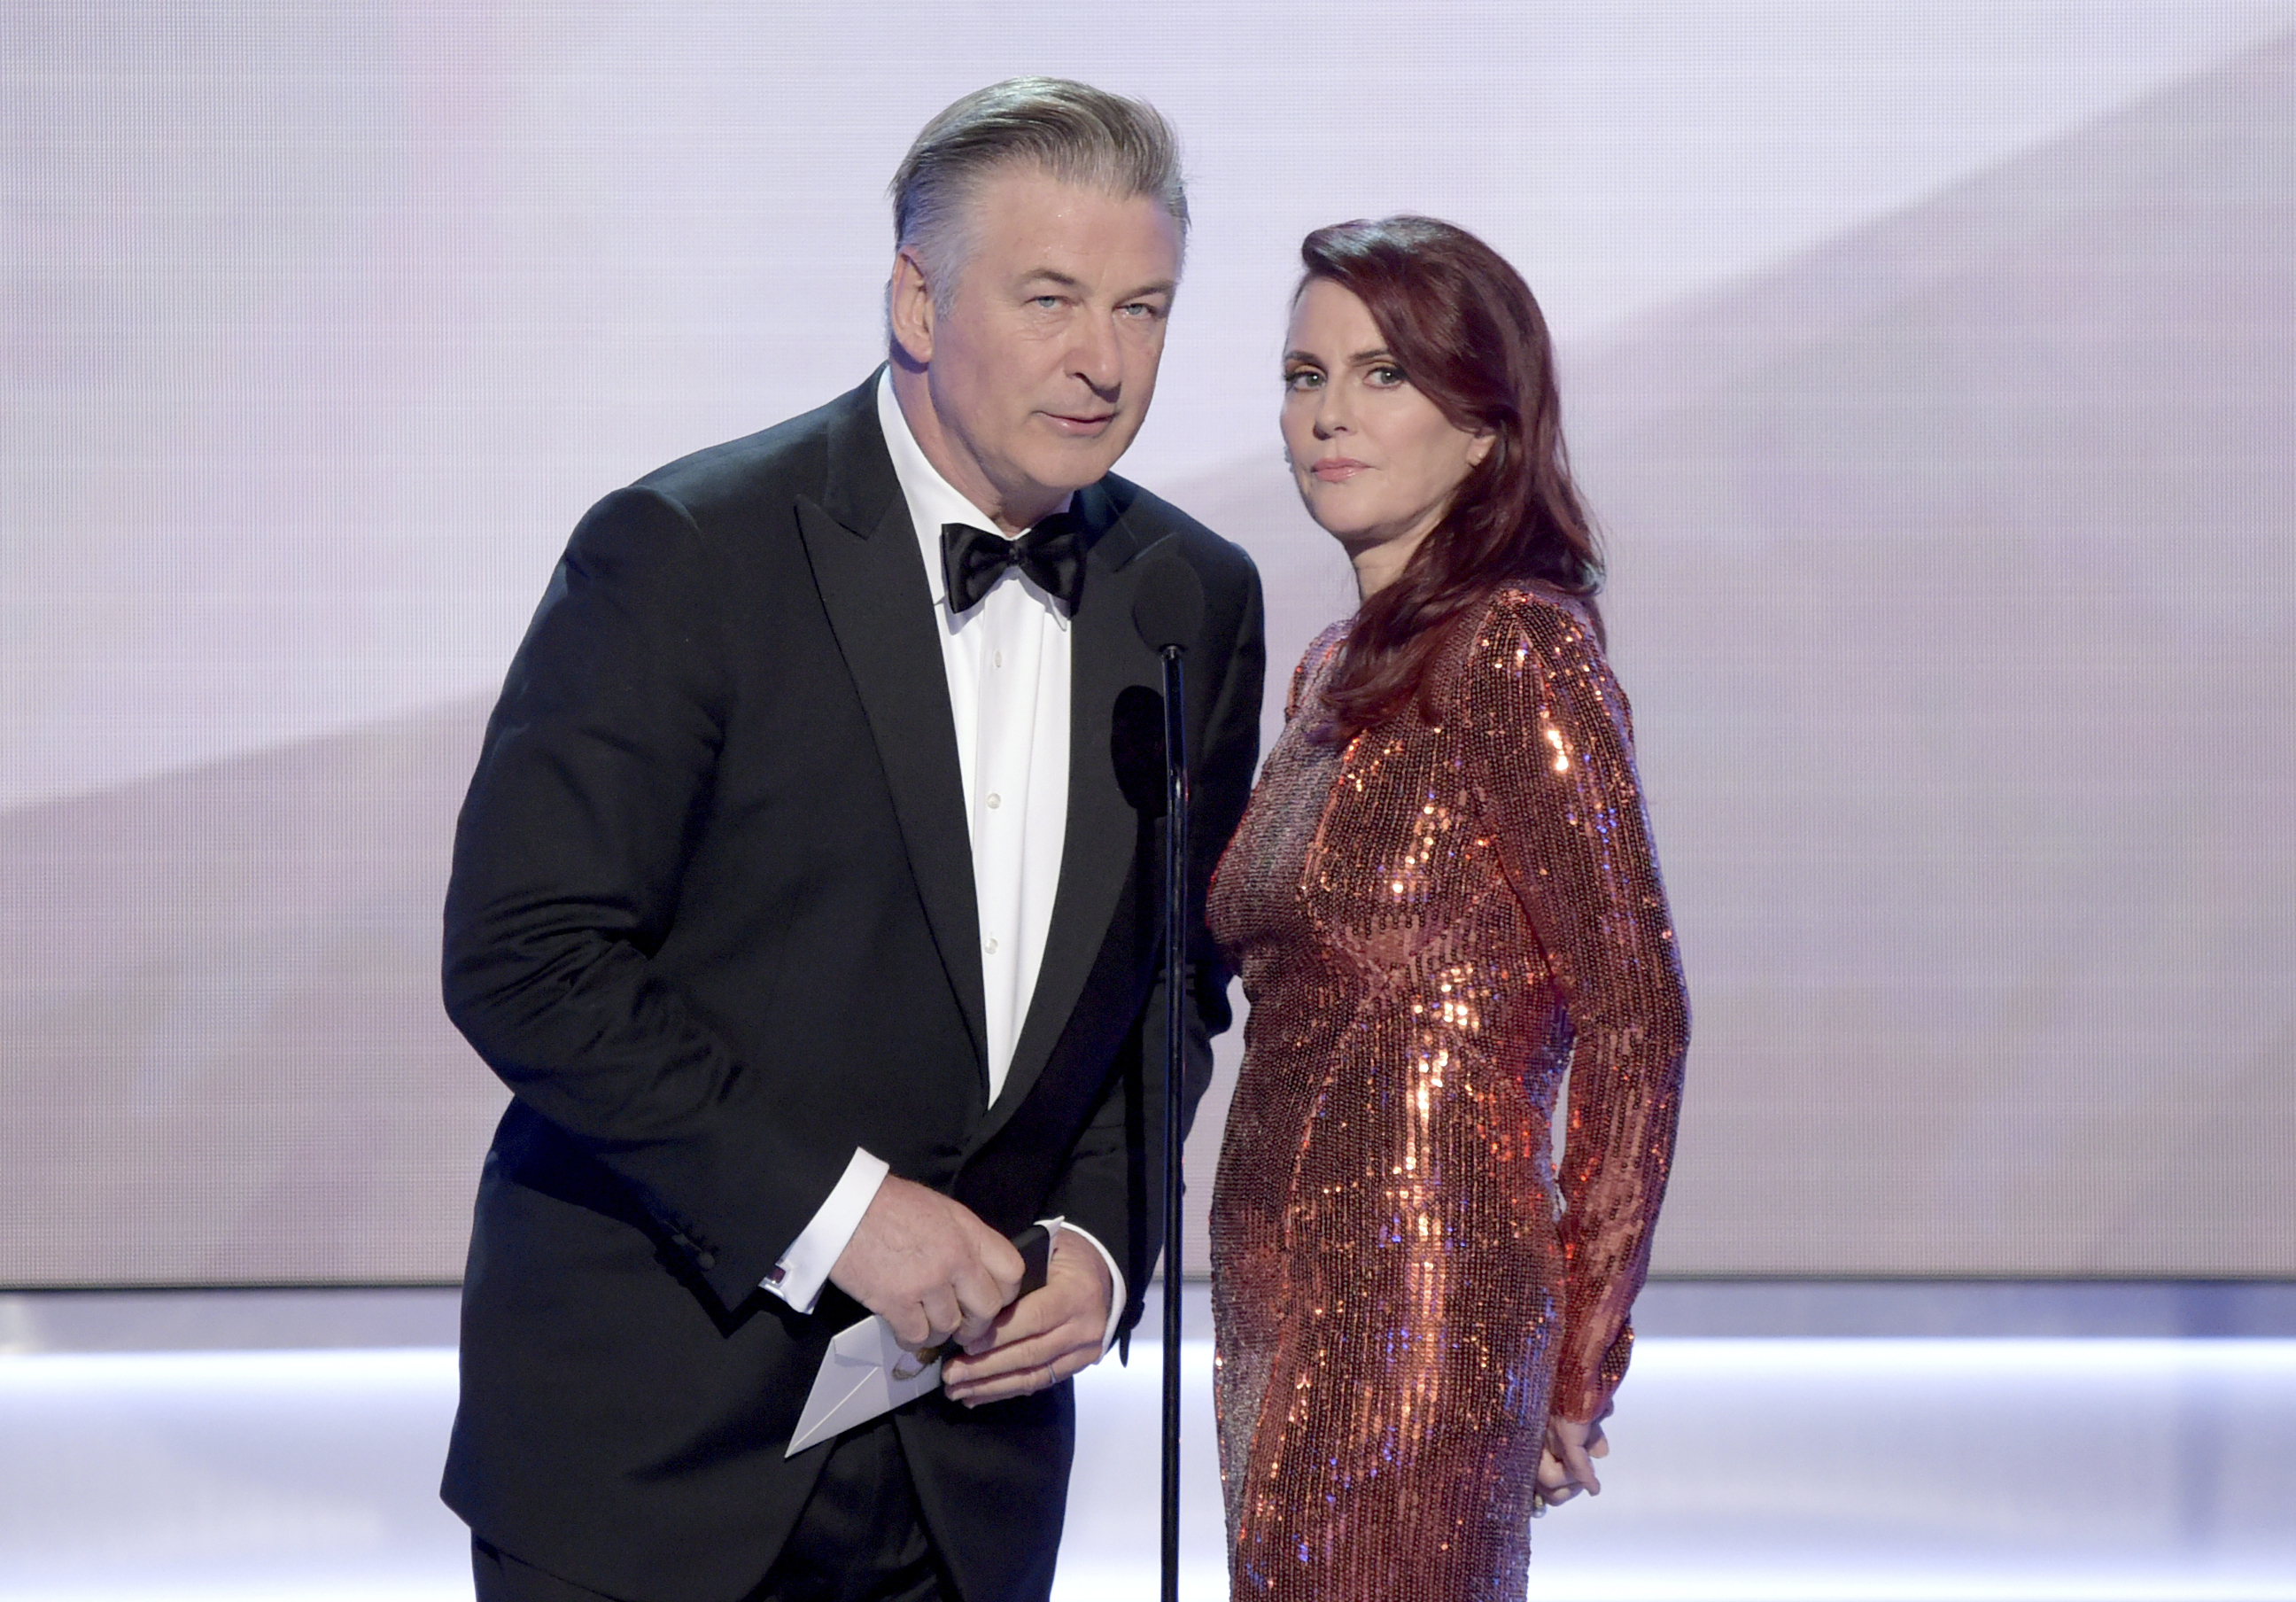 Alec Baldwin, left, and Megan Mullally present the award for outstanding performance by a male actor in a comedy series at the 25th annual Screen Actors Guild Awards at the Shrine Auditorium & Expo Hall on Sunday, Jan. 27, 2019, in Los Angeles. (Photo by Richard Shotwell/Invision/AP)